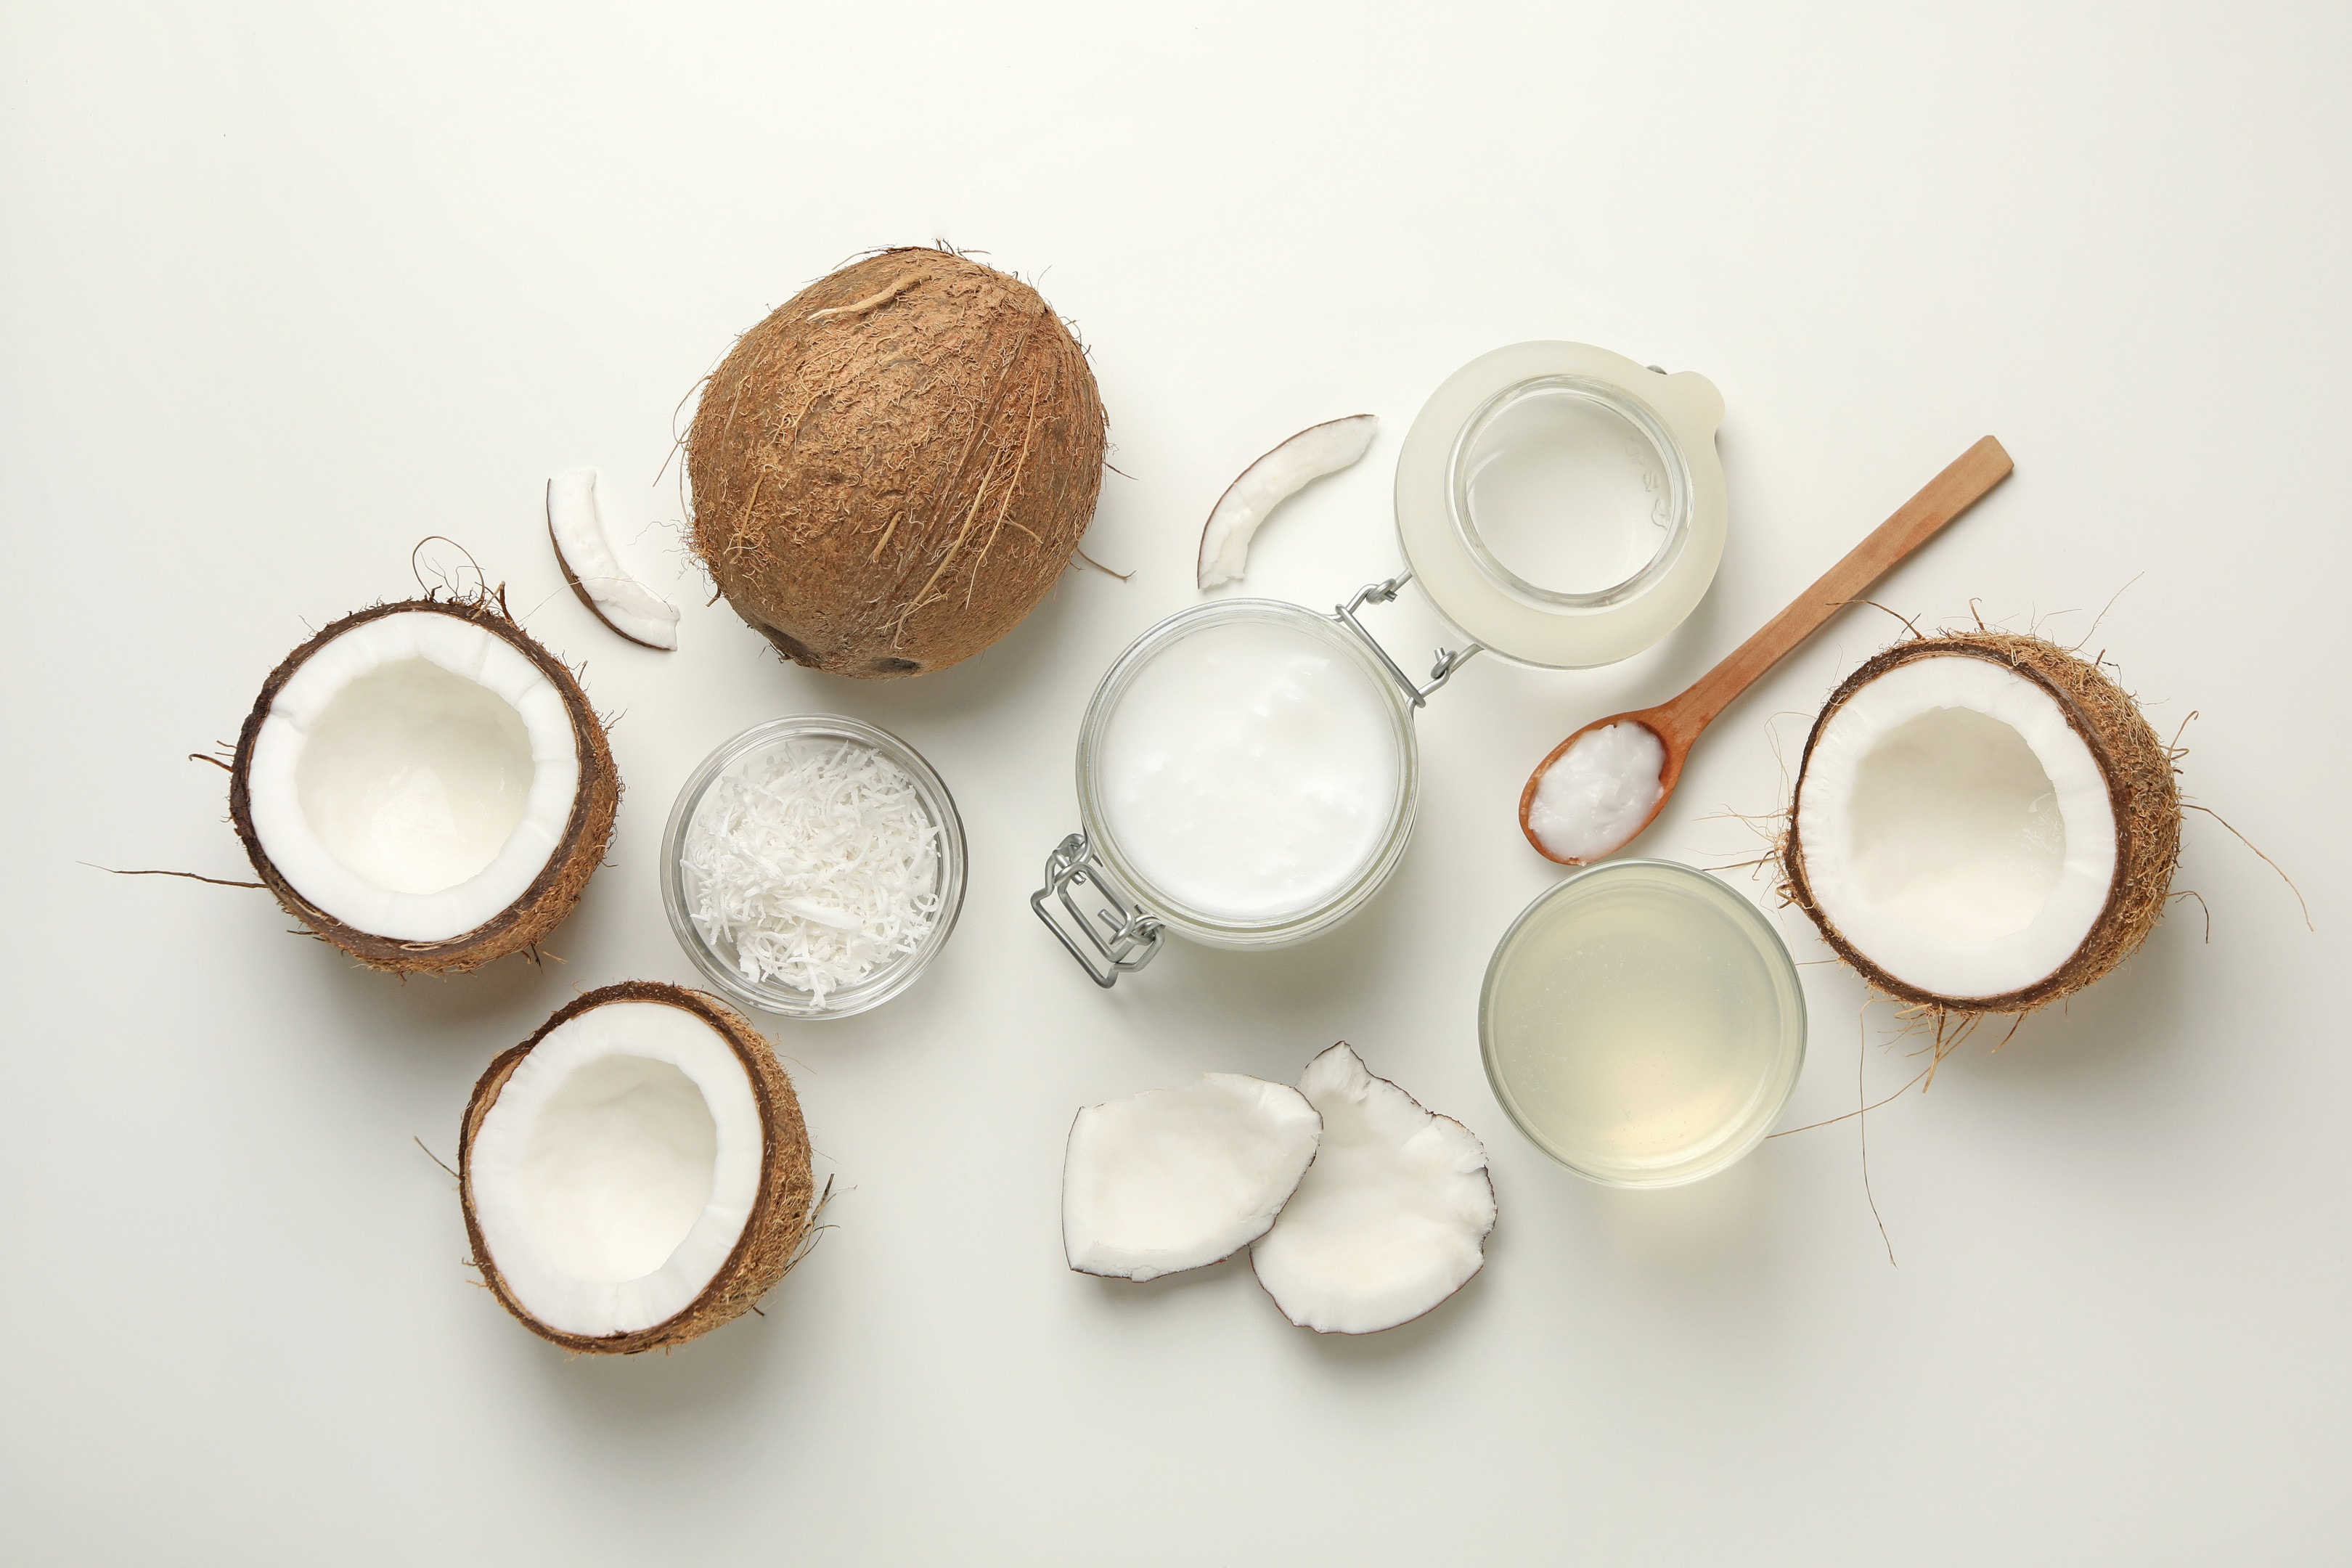 Fresh coconut and coconut water on white background